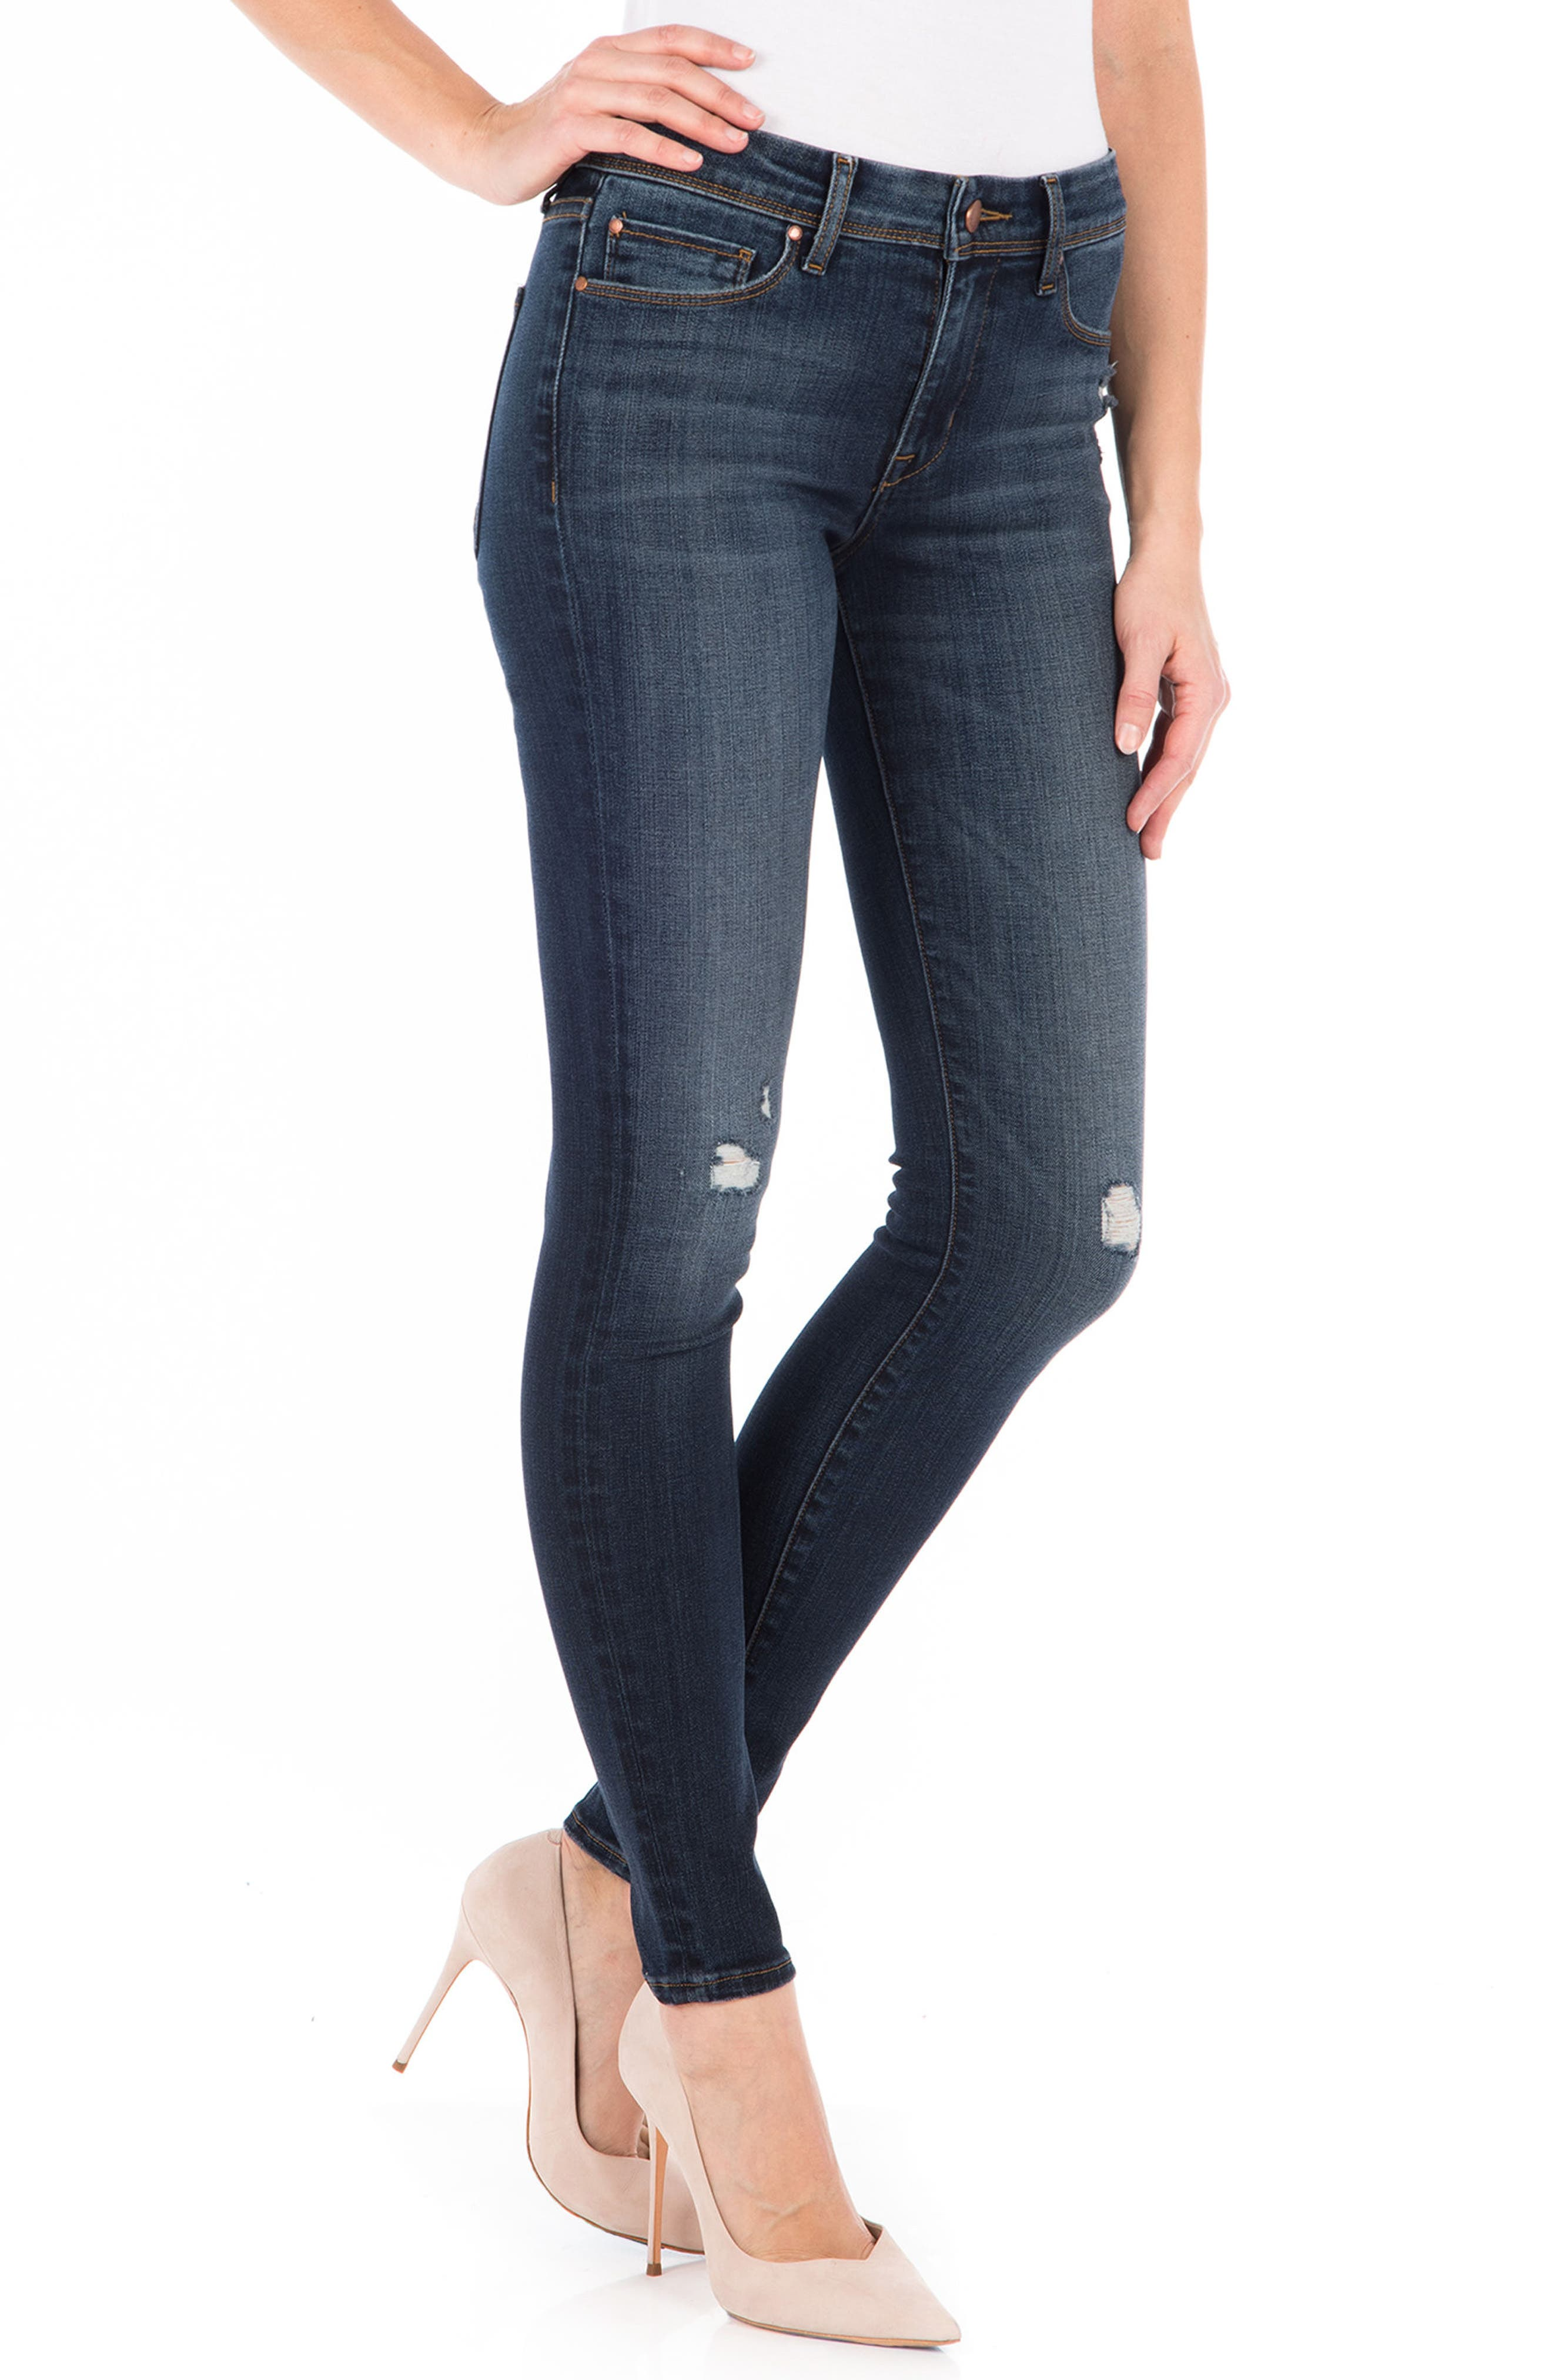 Belvedere Skinny Jeans,                             Alternate thumbnail 3, color,                             Refinery Blue